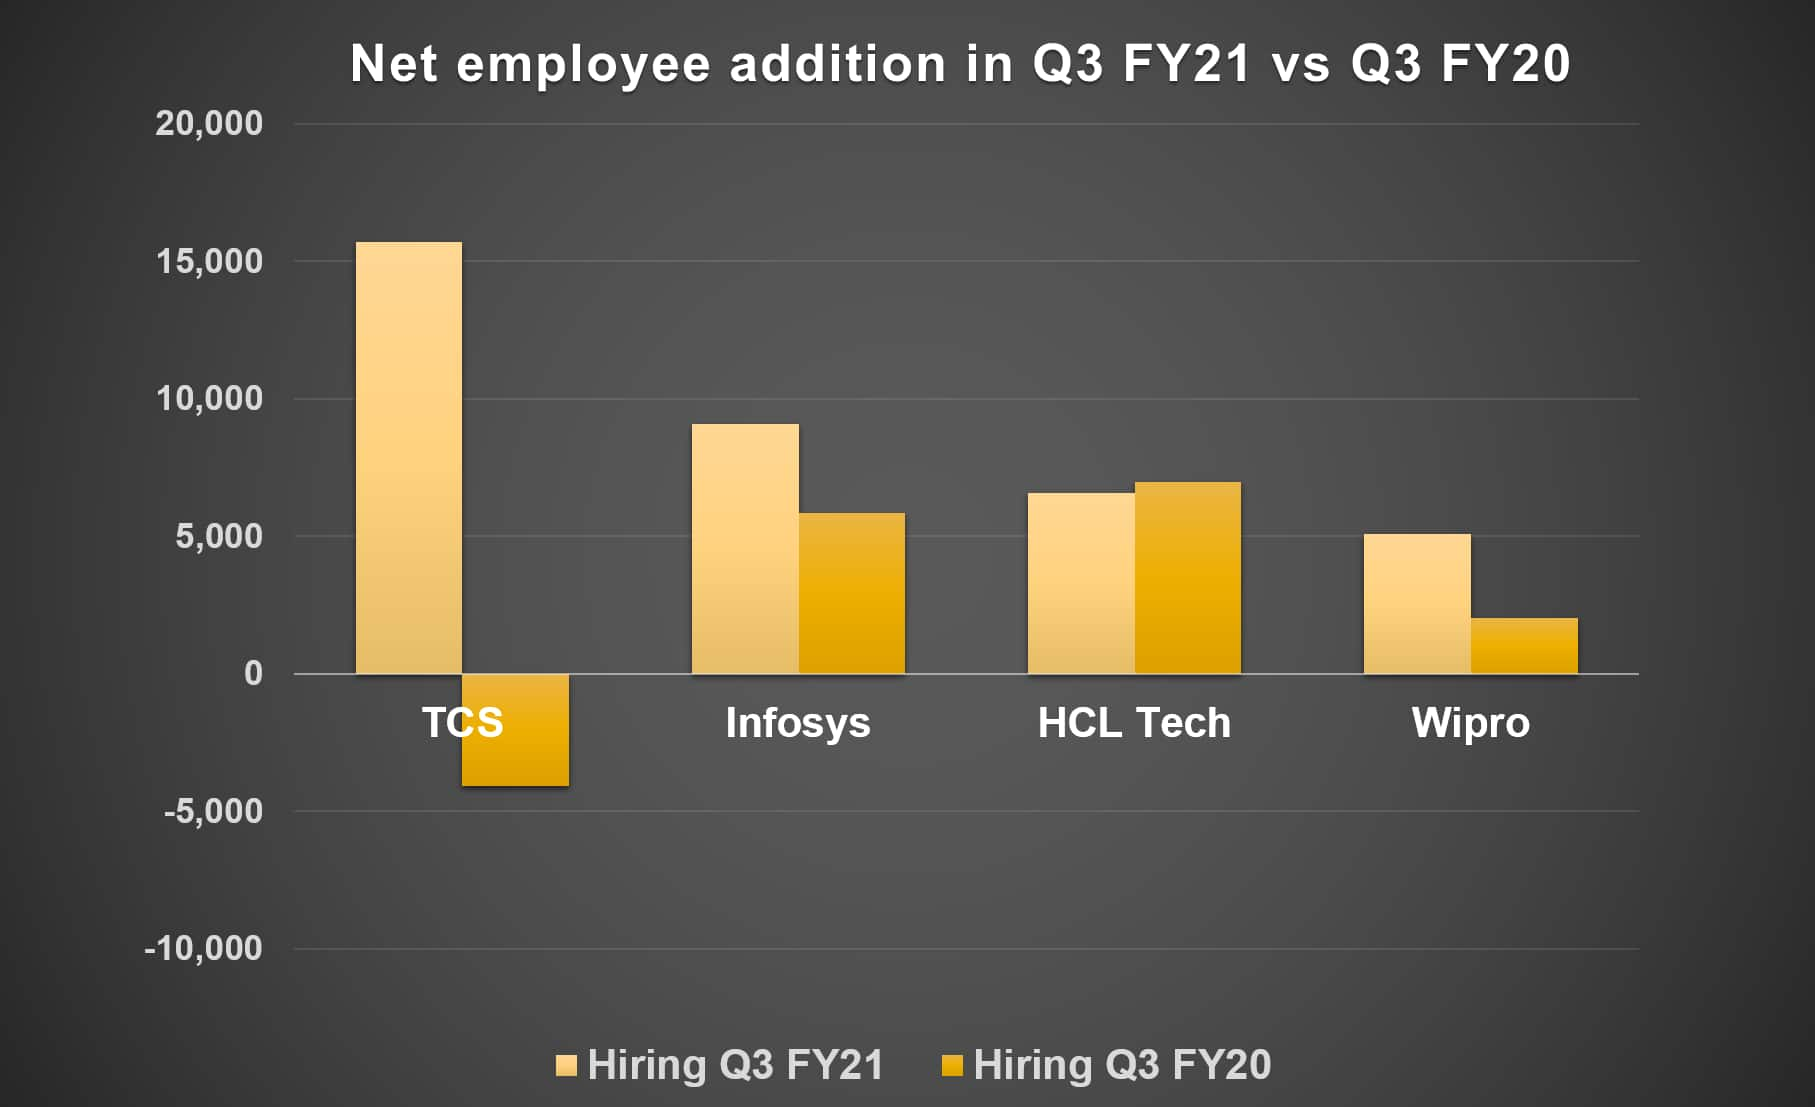 Net addition in Q3 FY21 vs FY20